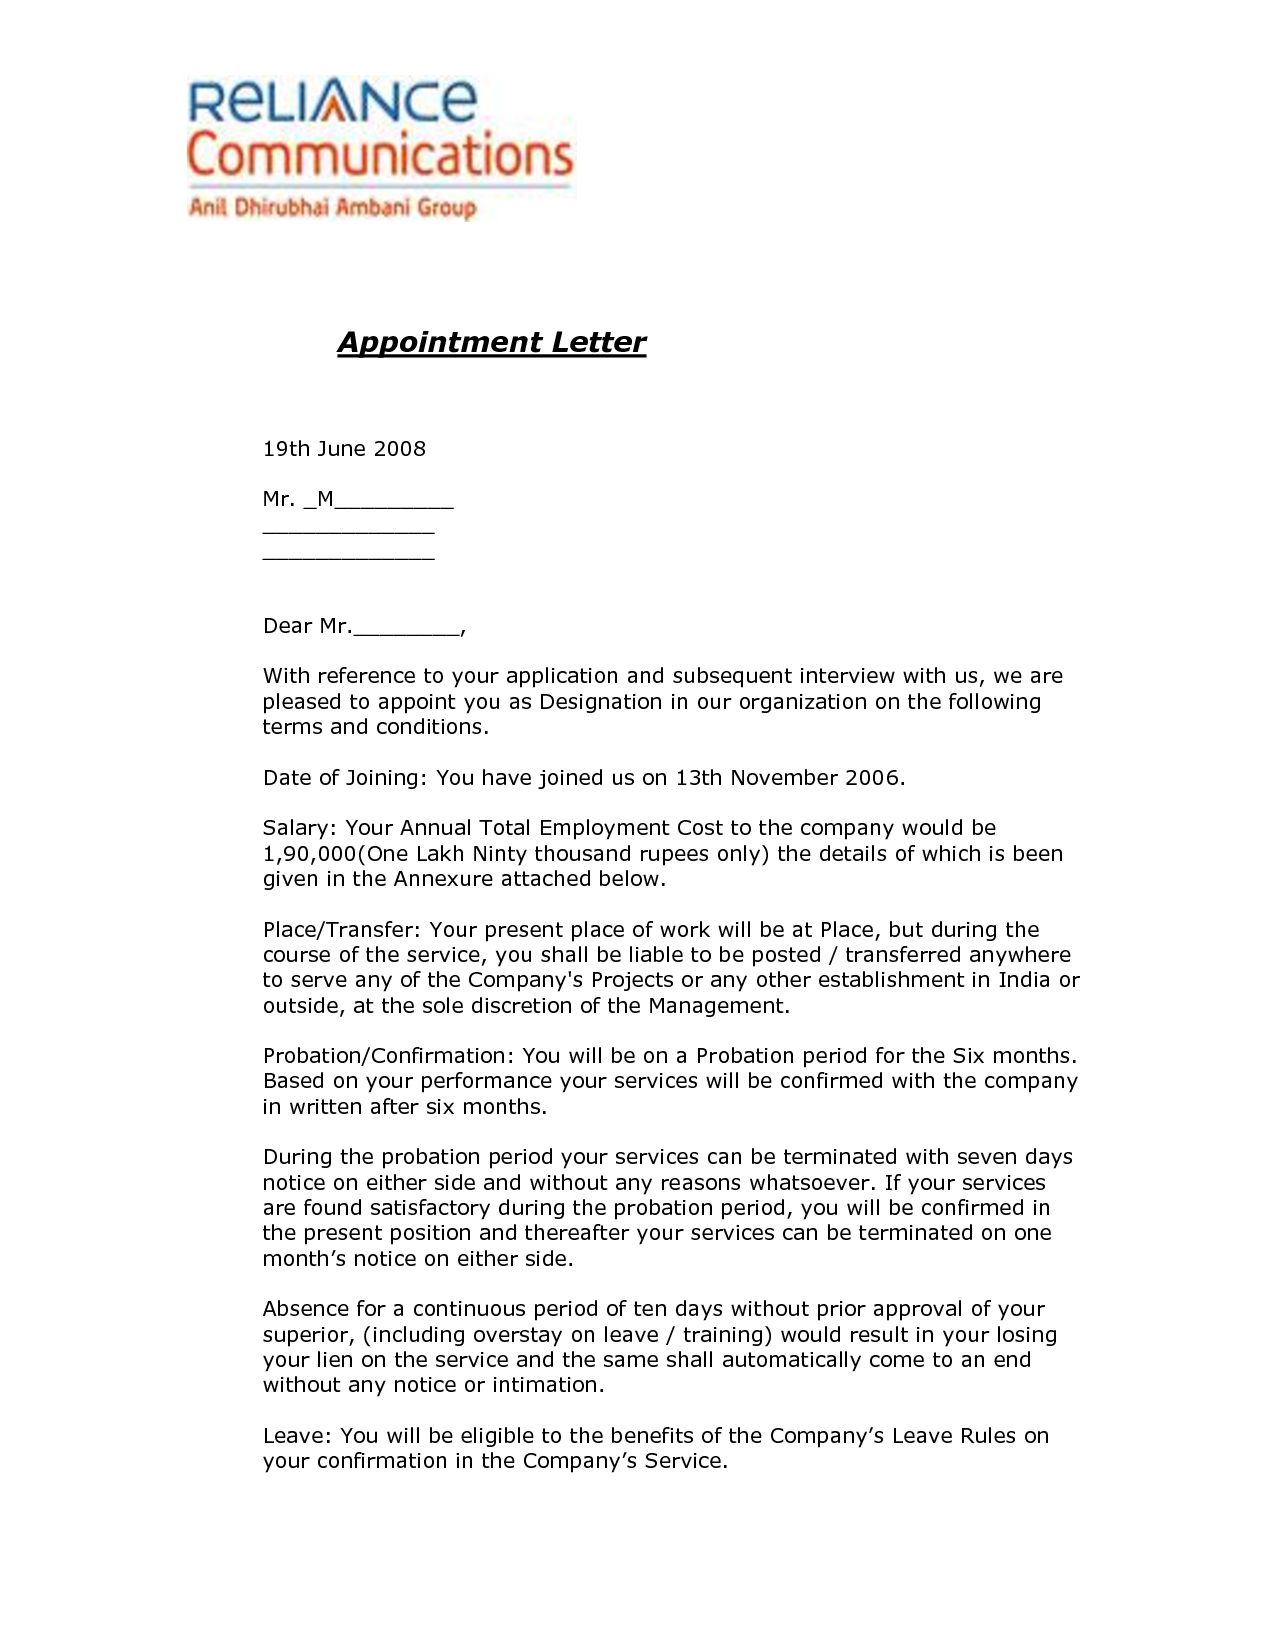 Joining Letter Format For Offer Letter Format Legal Documents Pinterest